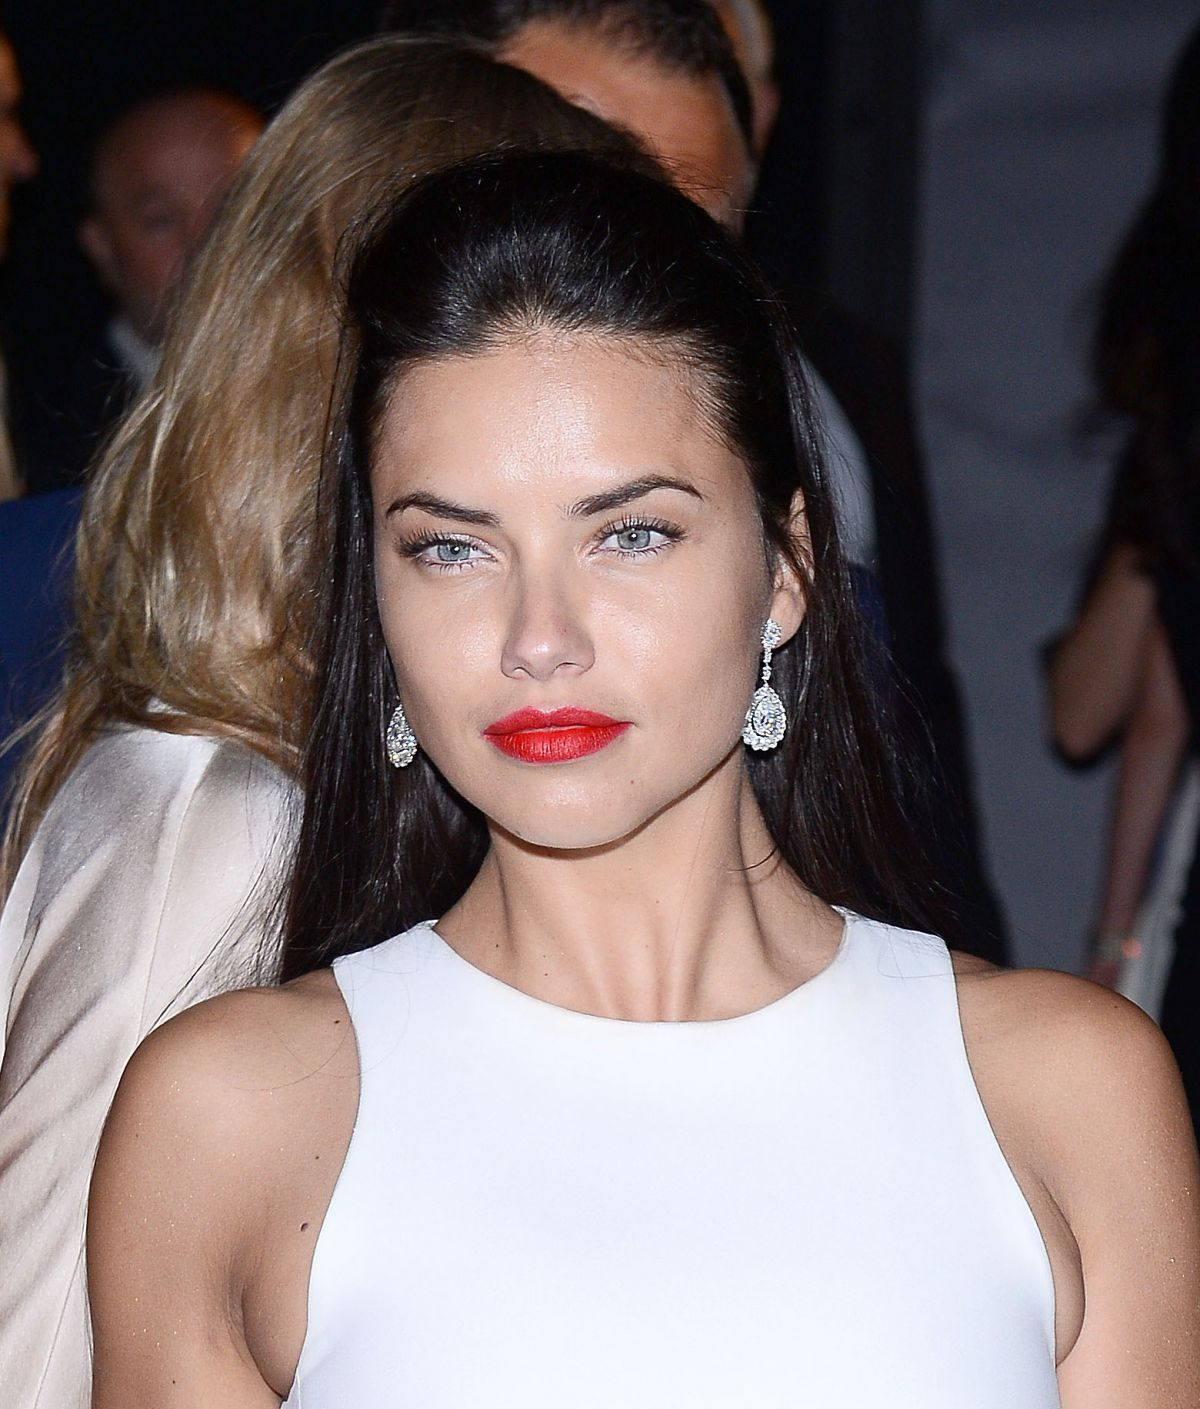 Adriana Lima: ADRIANA LIMA At Soiree Chopard Gold Party In Cannes